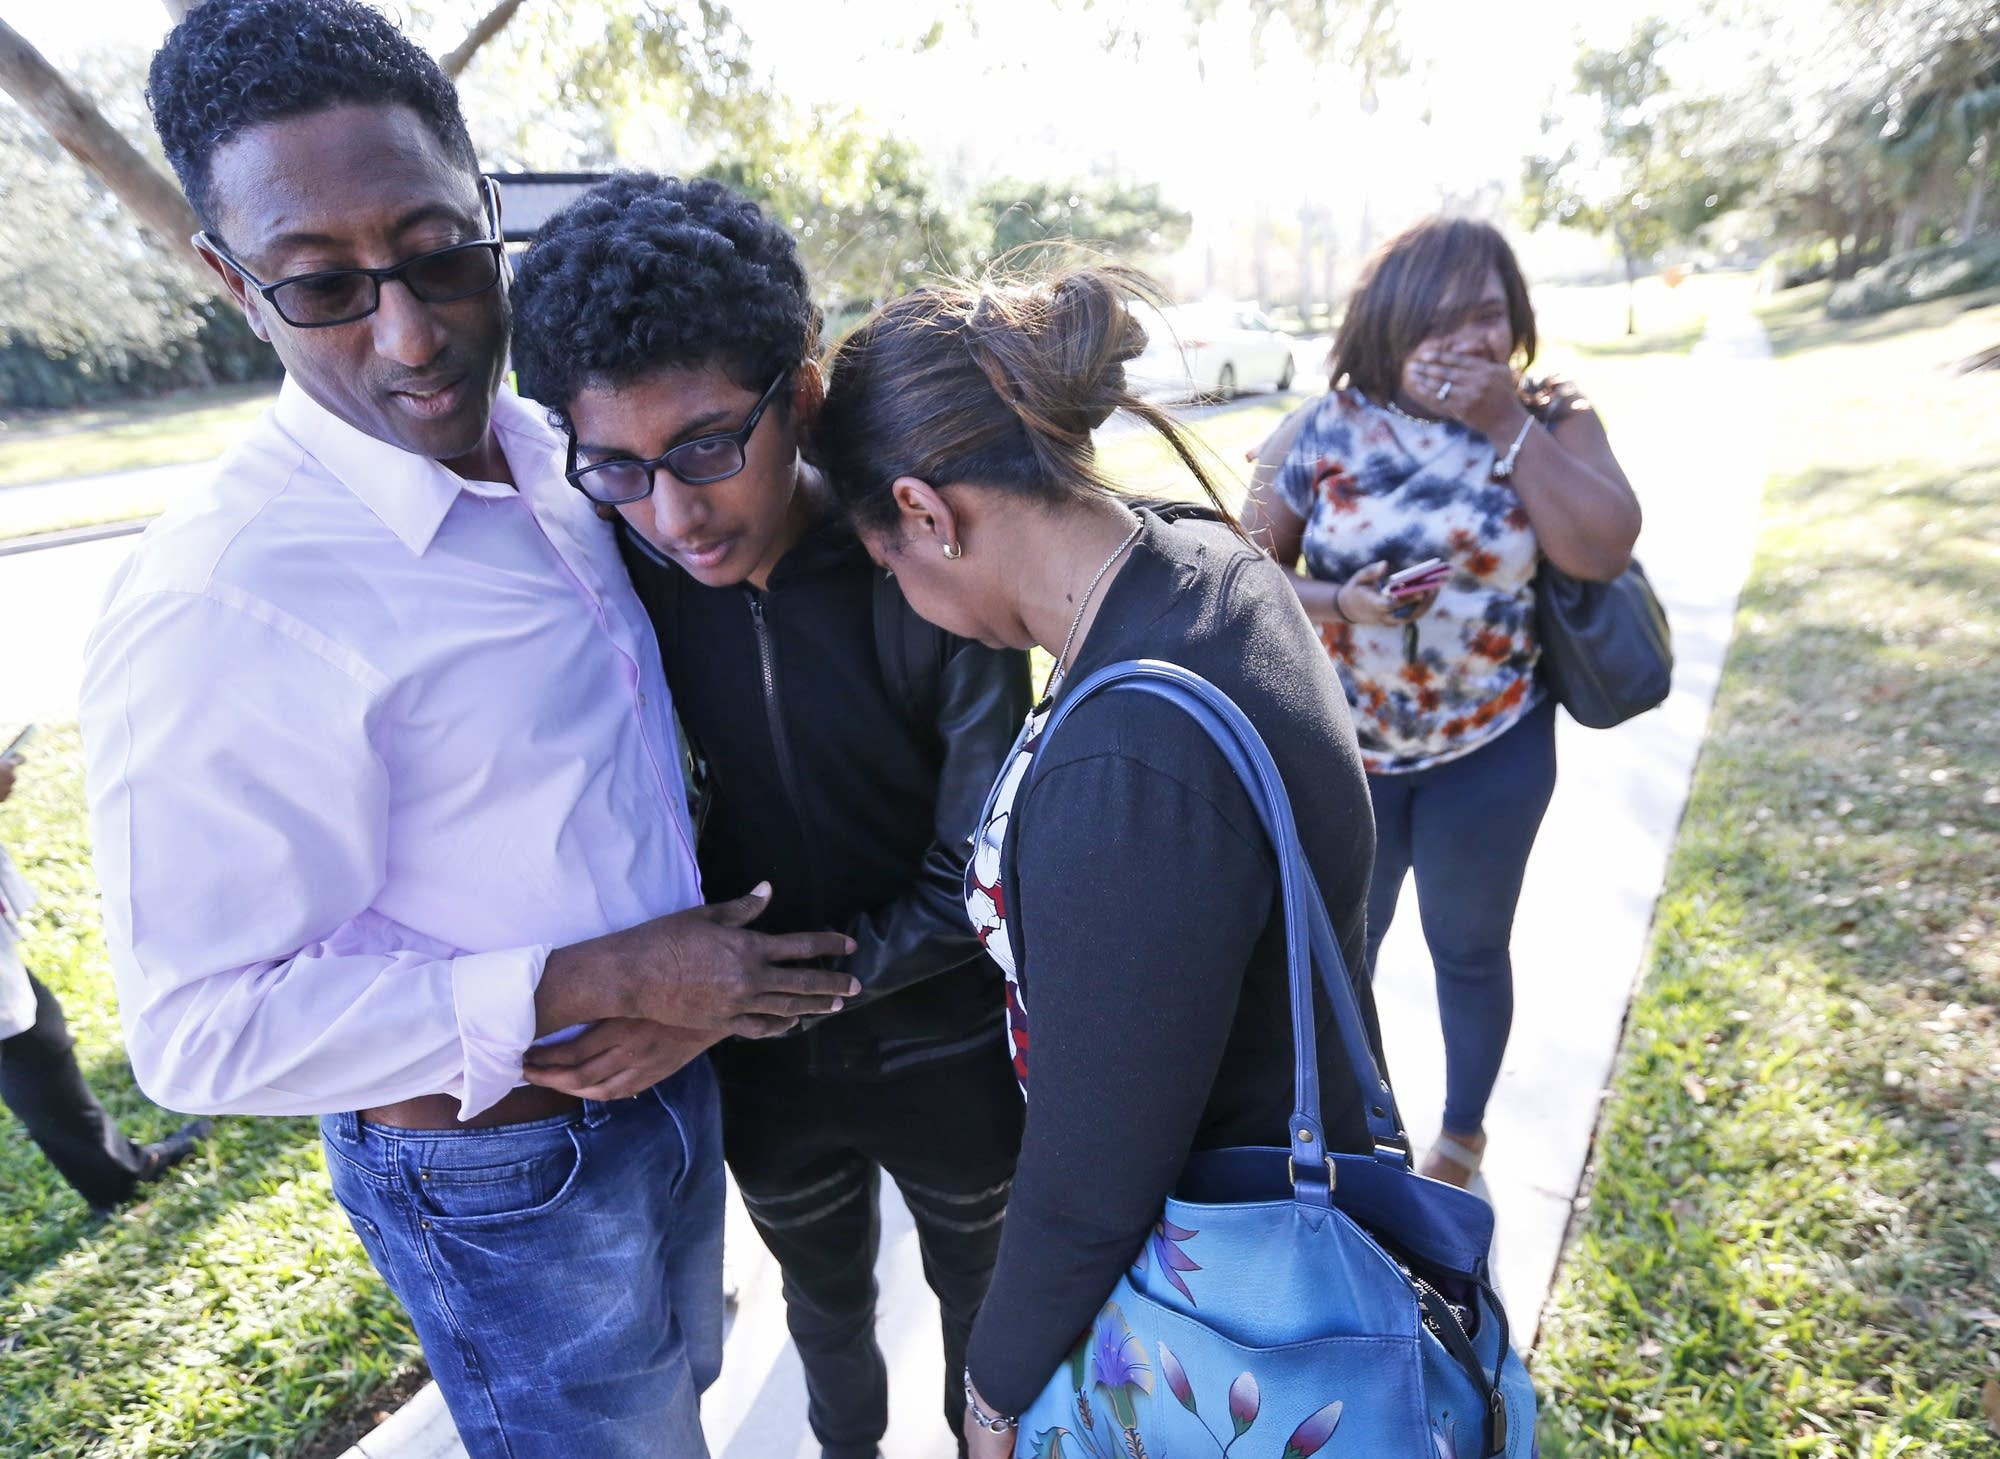 florida high school shooting causes city to mourn mpr news